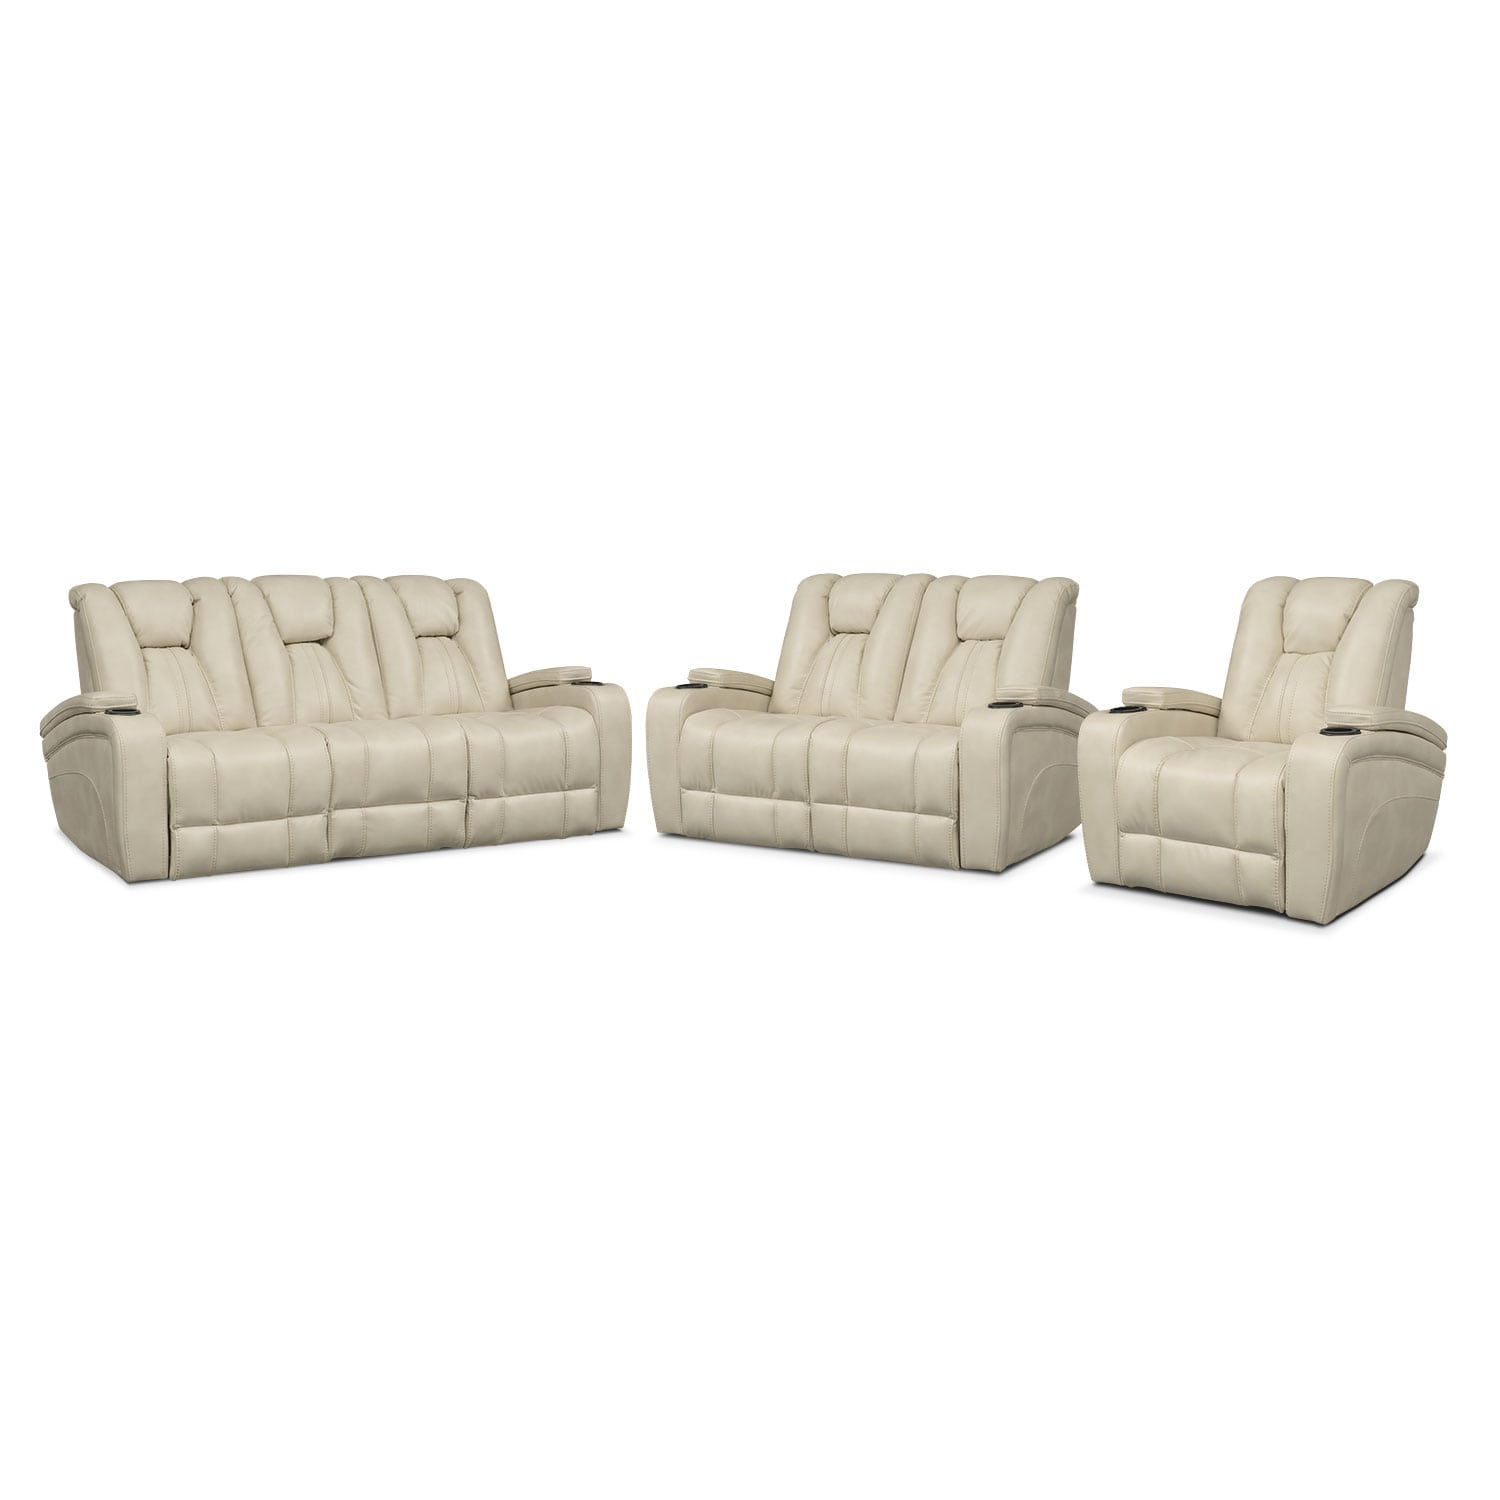 Pulsar Dual Power Reclining Sofa Dual Power Reclining Loveseat And Power Recliner Set Cream